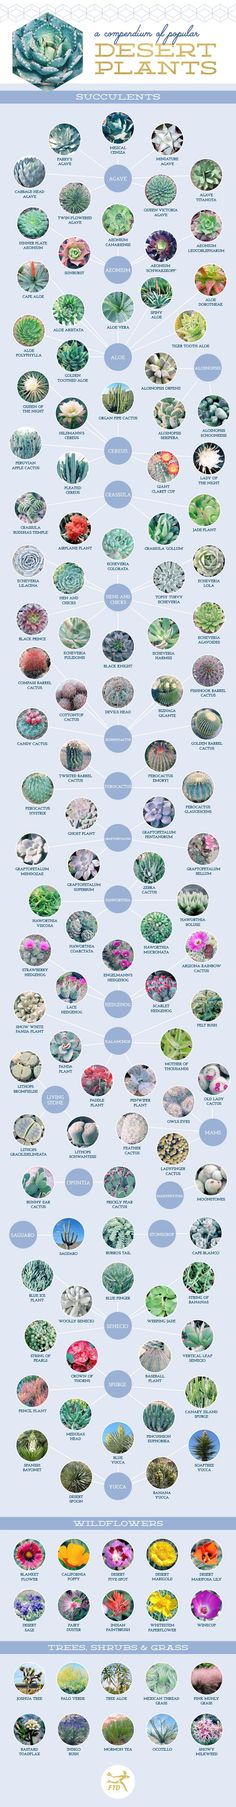 Don't know the name of your succulent or cactus plant? This great Compendium of 127 Stunning Desert Plants and Succulents may help. Image shared with permission of ftd.com . For help on propagating succulents please visit thegardeningcook.com